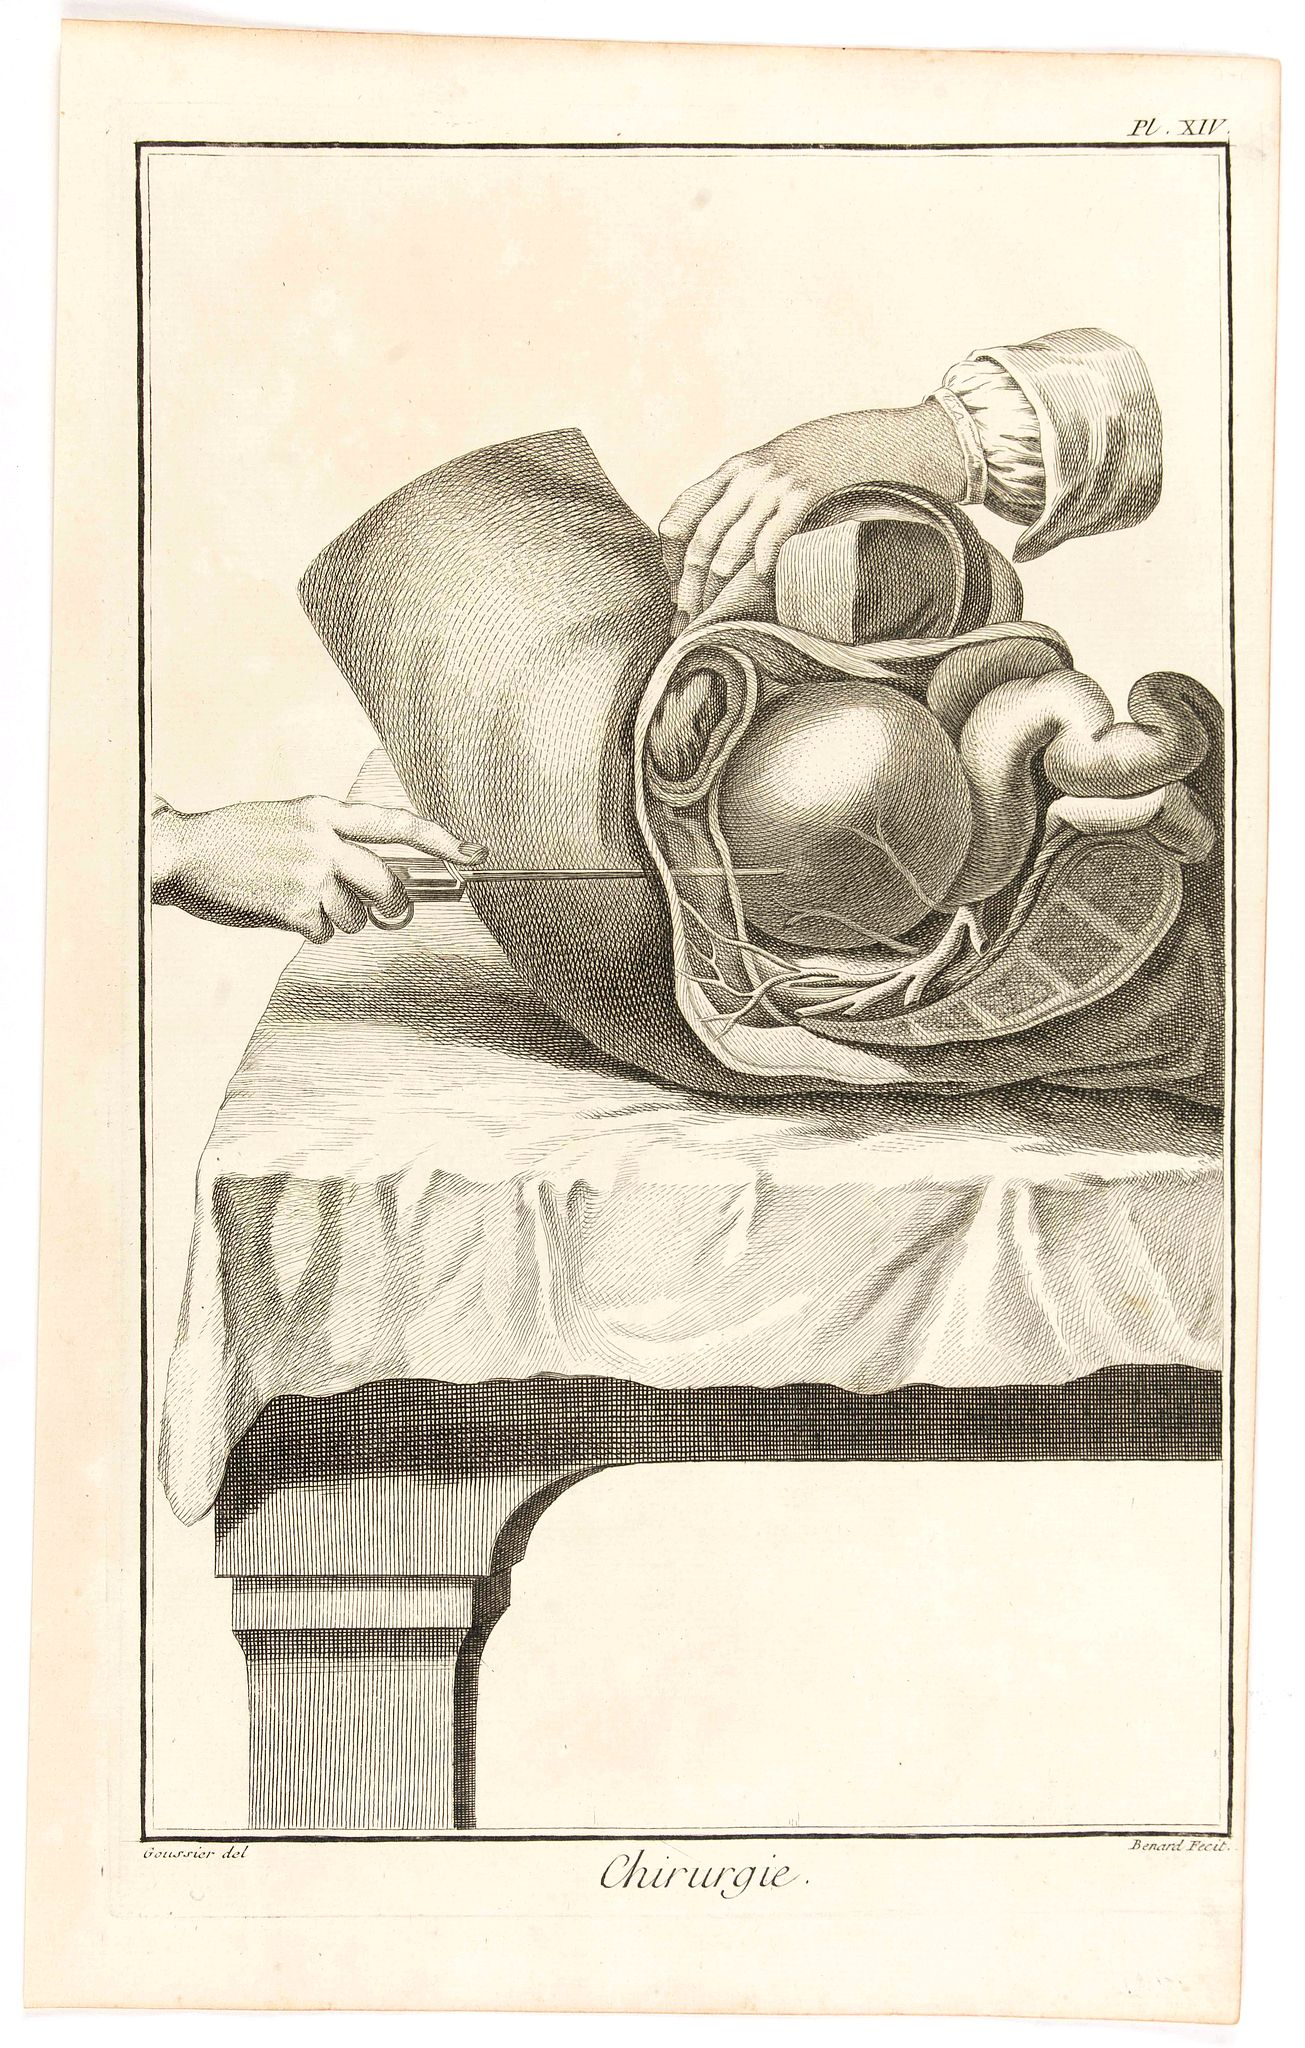 DIDEROT, D. -  Chirurgie, plate XIV.